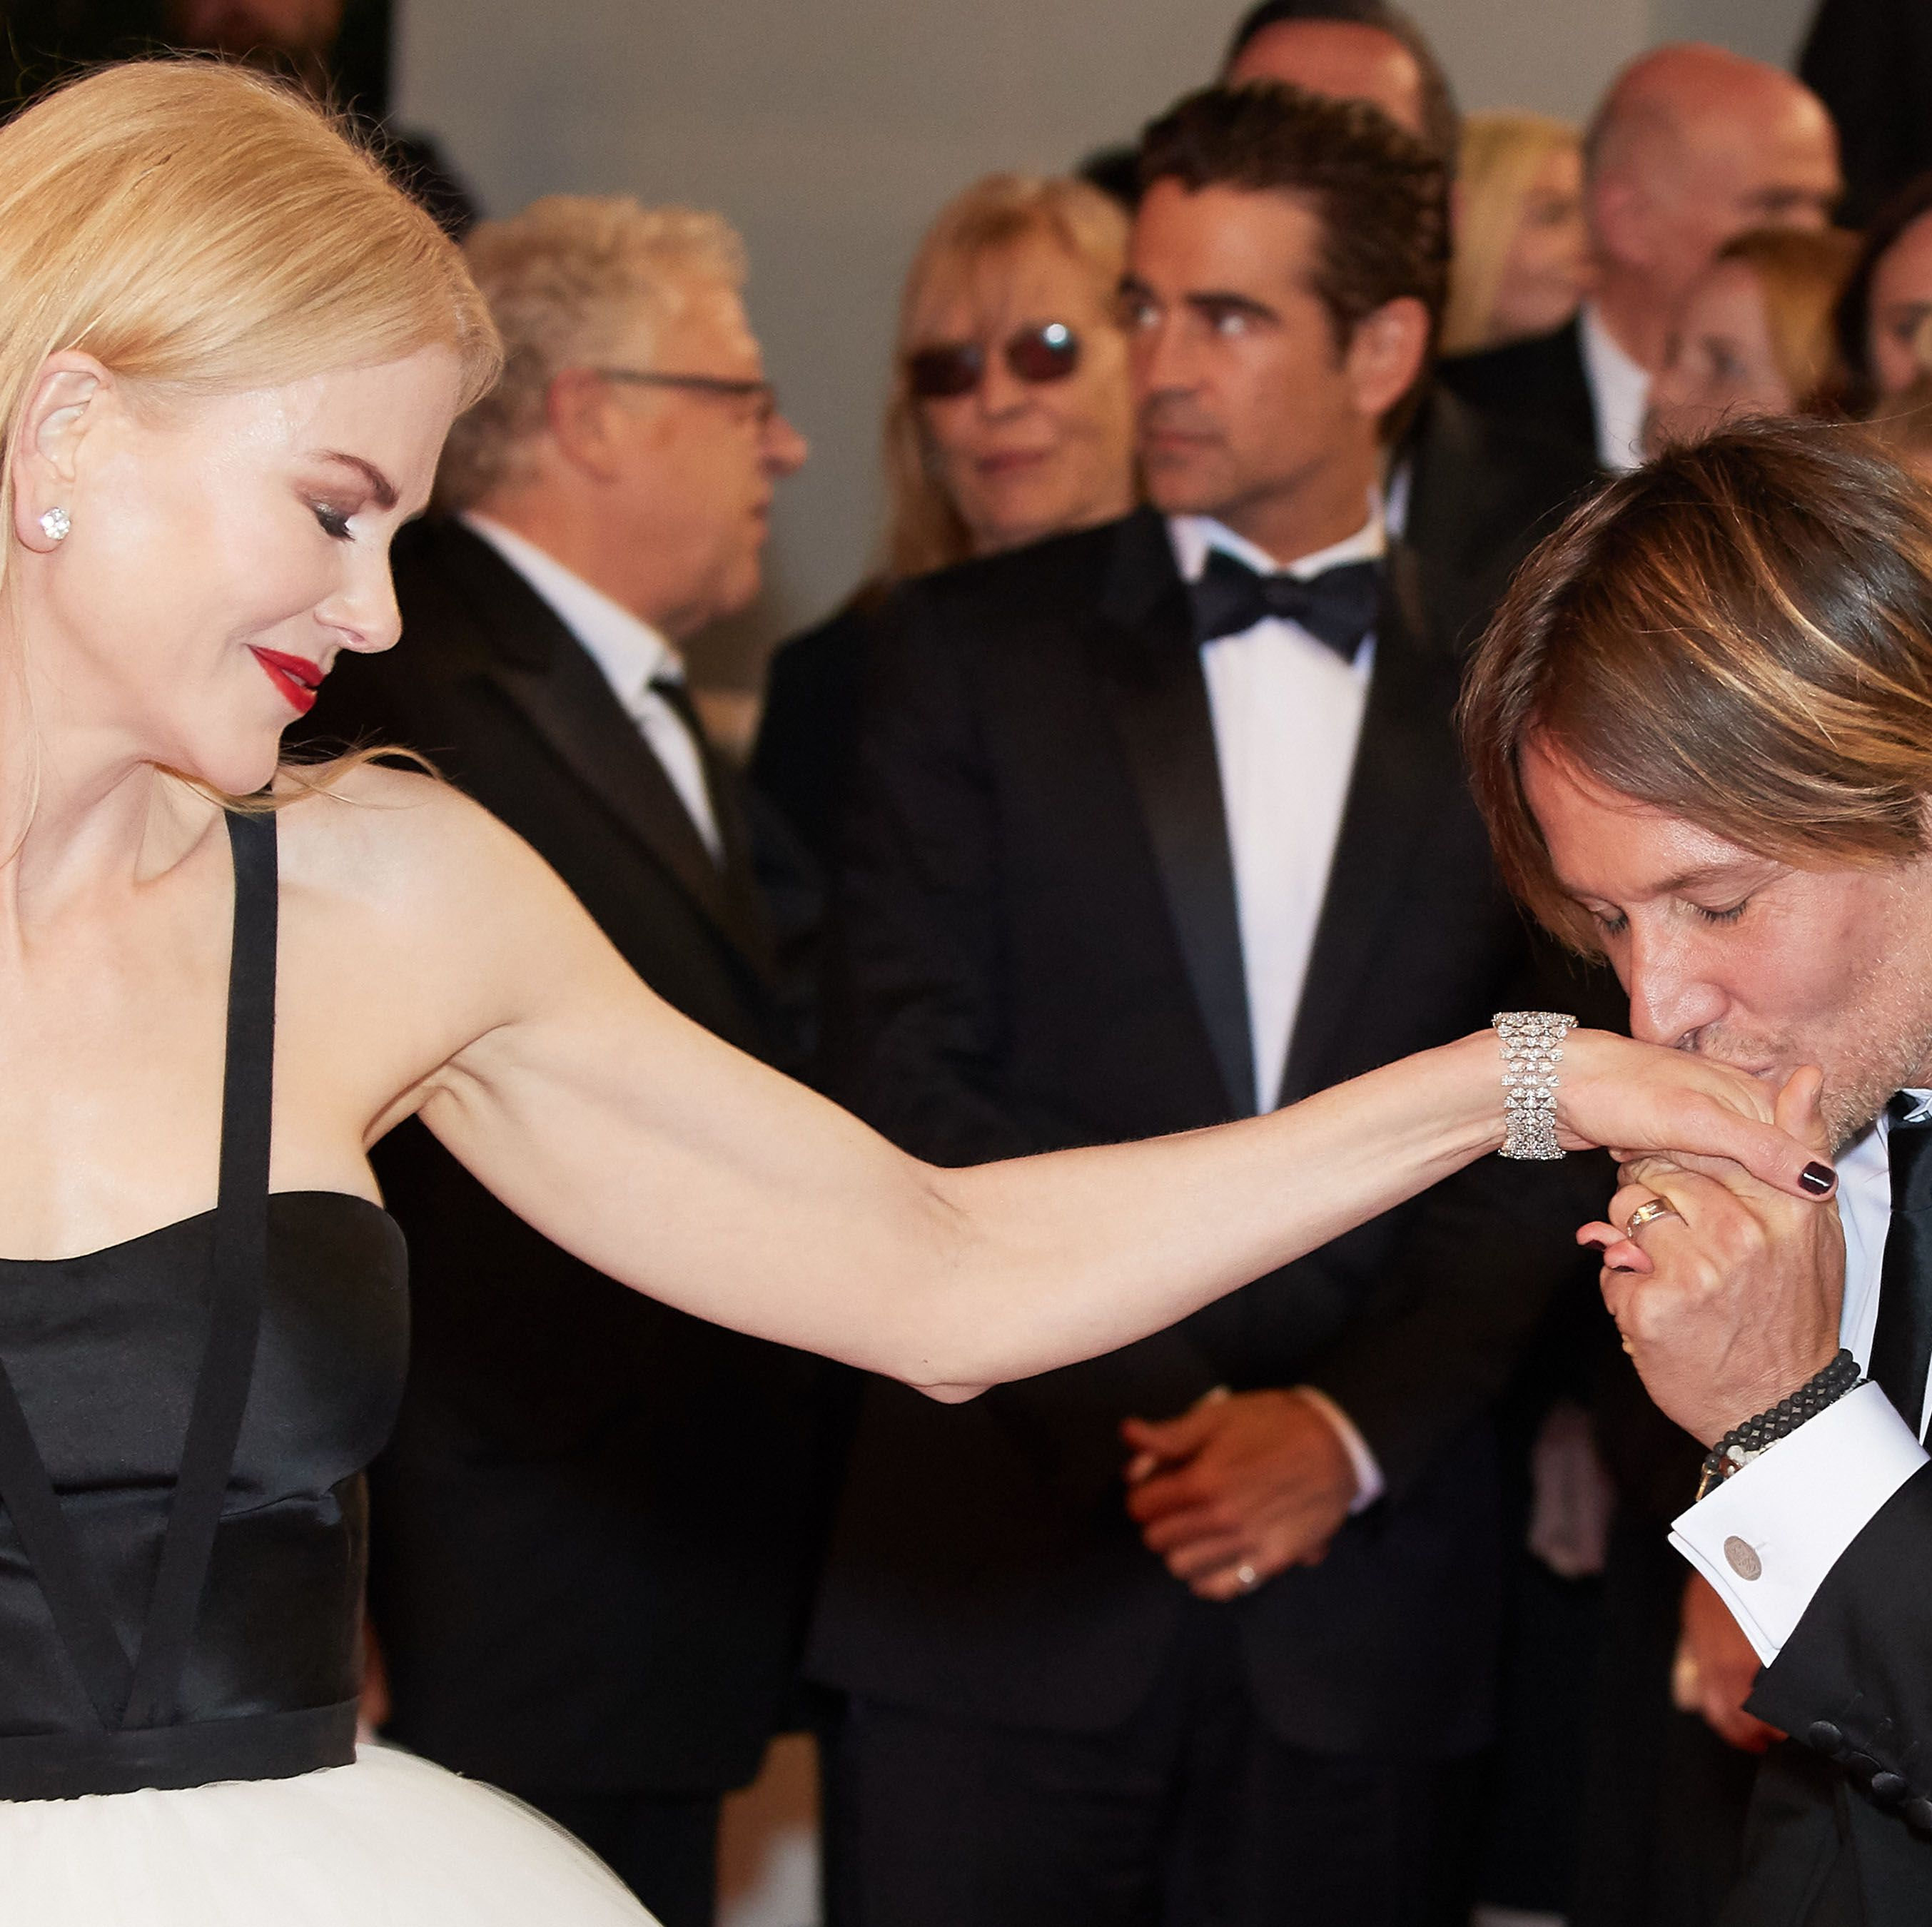 A Photo of Nicole Kidman at Keith Urban's Benefit Concert Has Sparked Deep Concerns From Fans